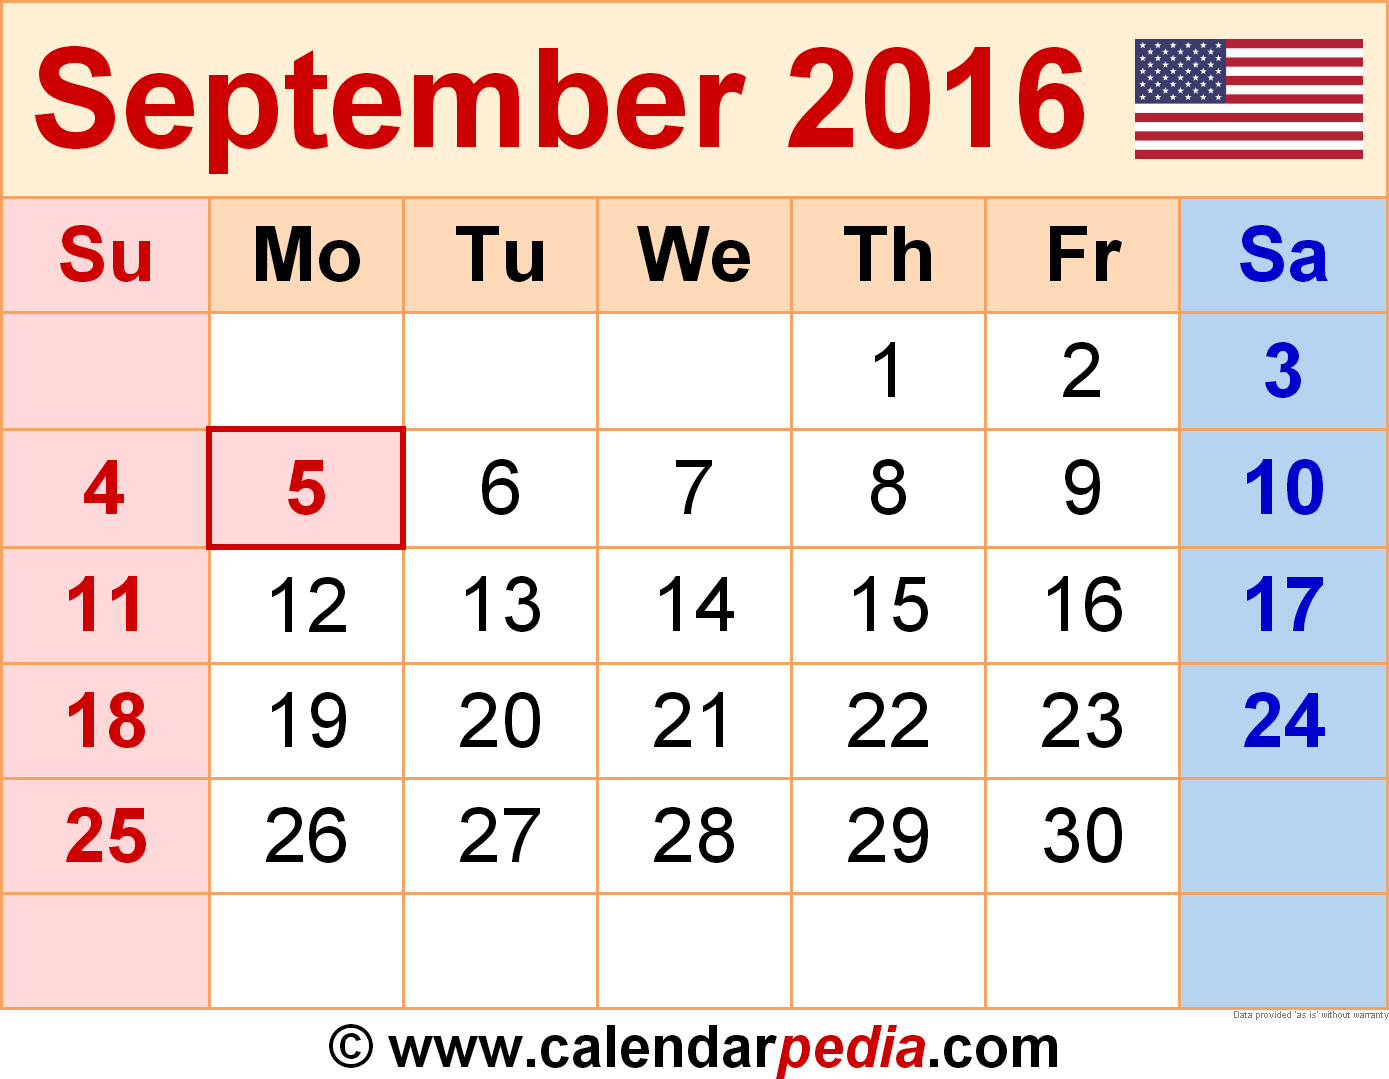 September 2016 calendars for word excel pdf printables november 2014 calendar as a graphicimage file in png format alramifo Image collections